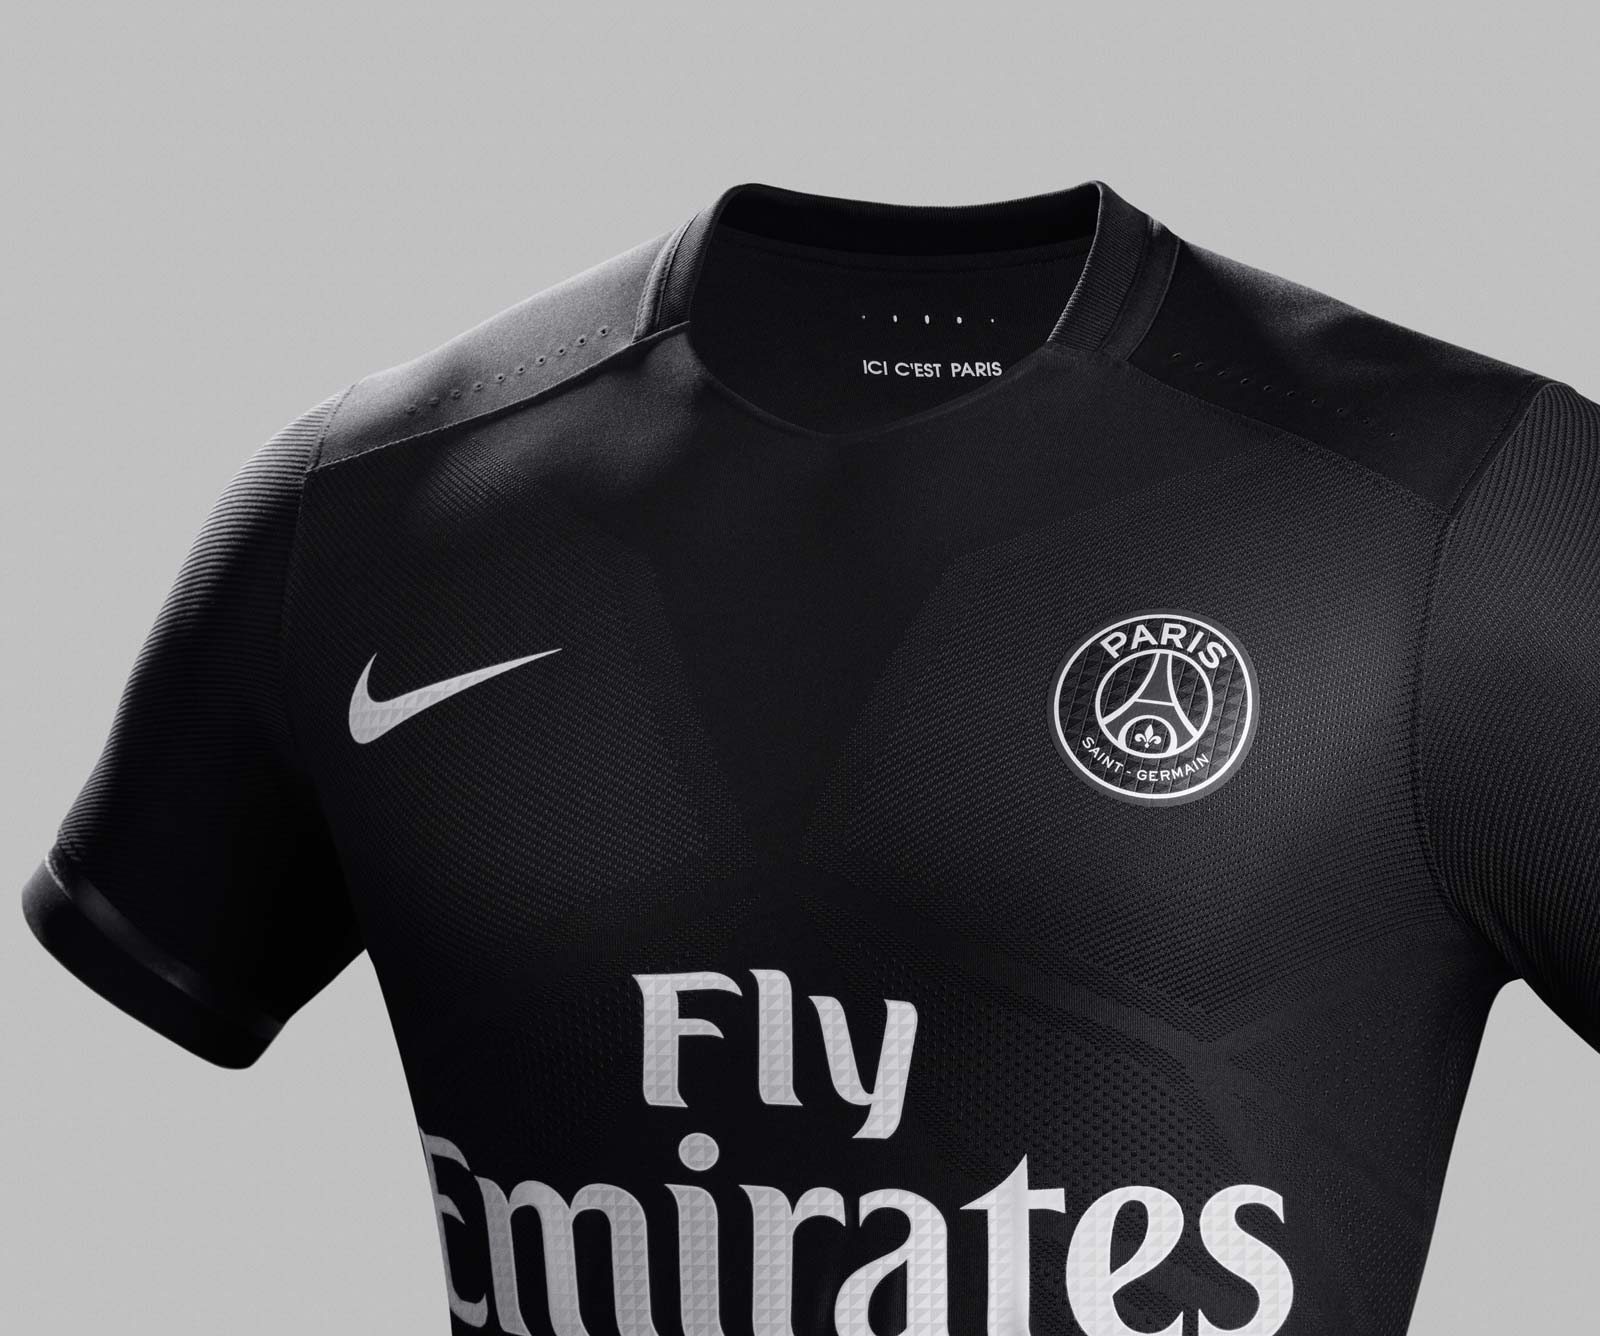 fuite du maillot du paris saint germain third 2017 2018 footy headlines fr. Black Bedroom Furniture Sets. Home Design Ideas